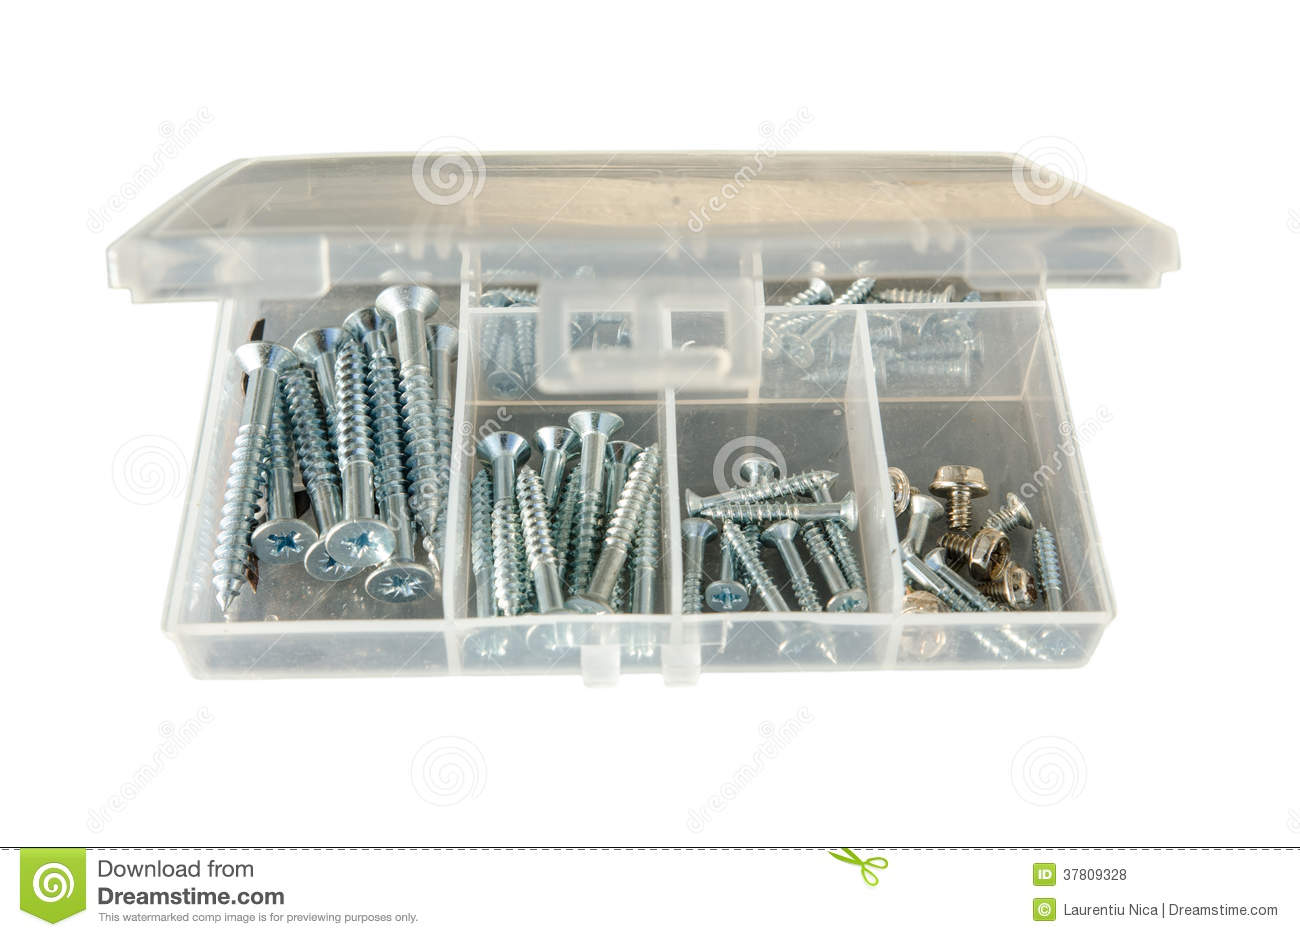 Drywall screws kit stock photo  Image of build, attach